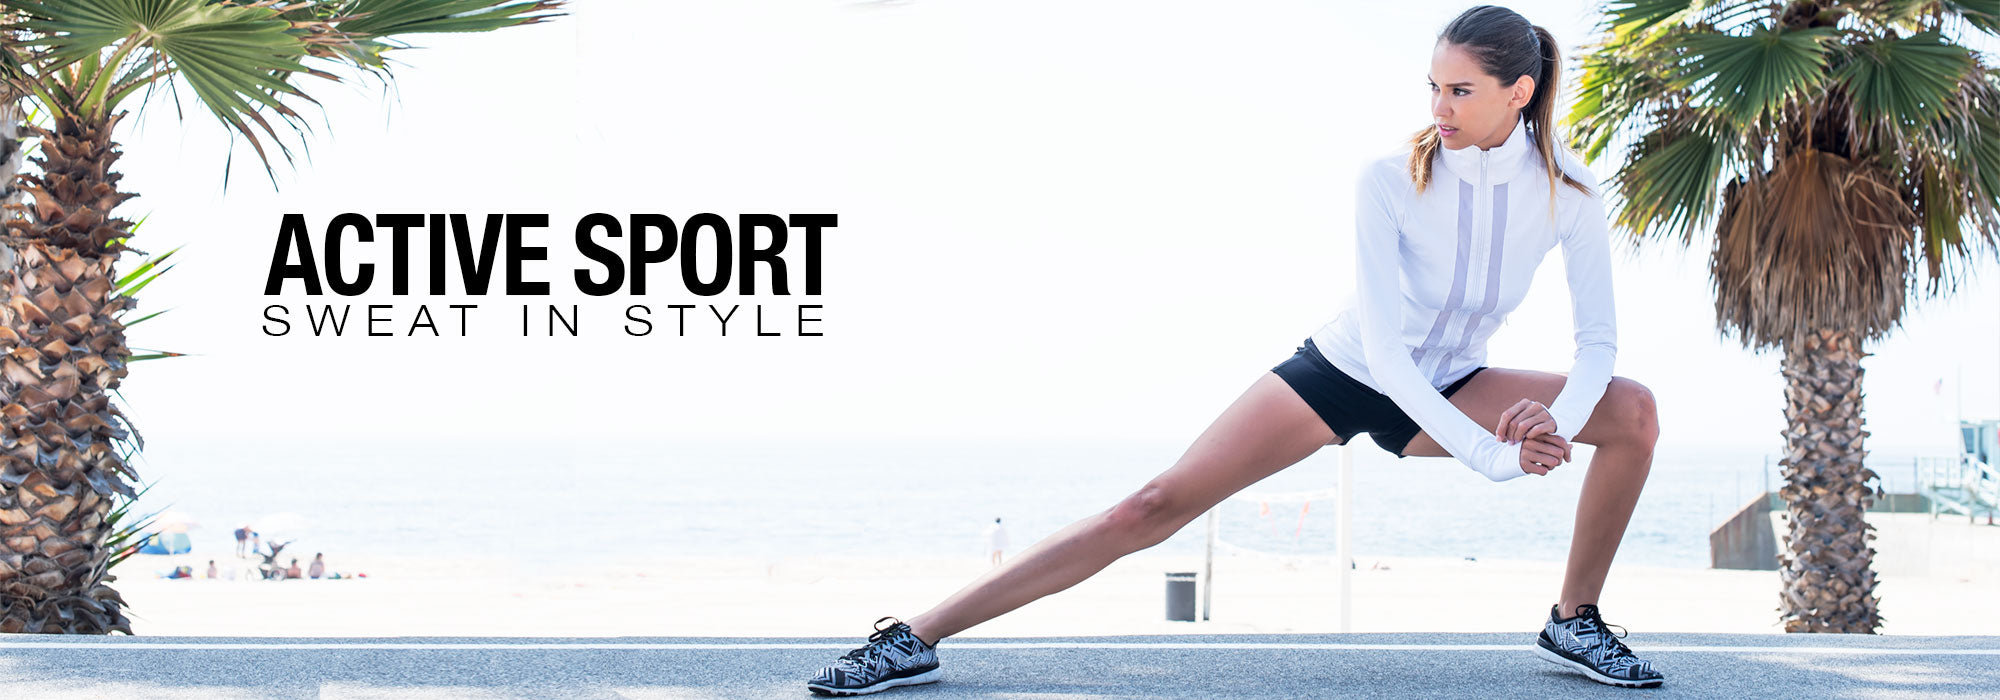 Active Sport Sweat In Style